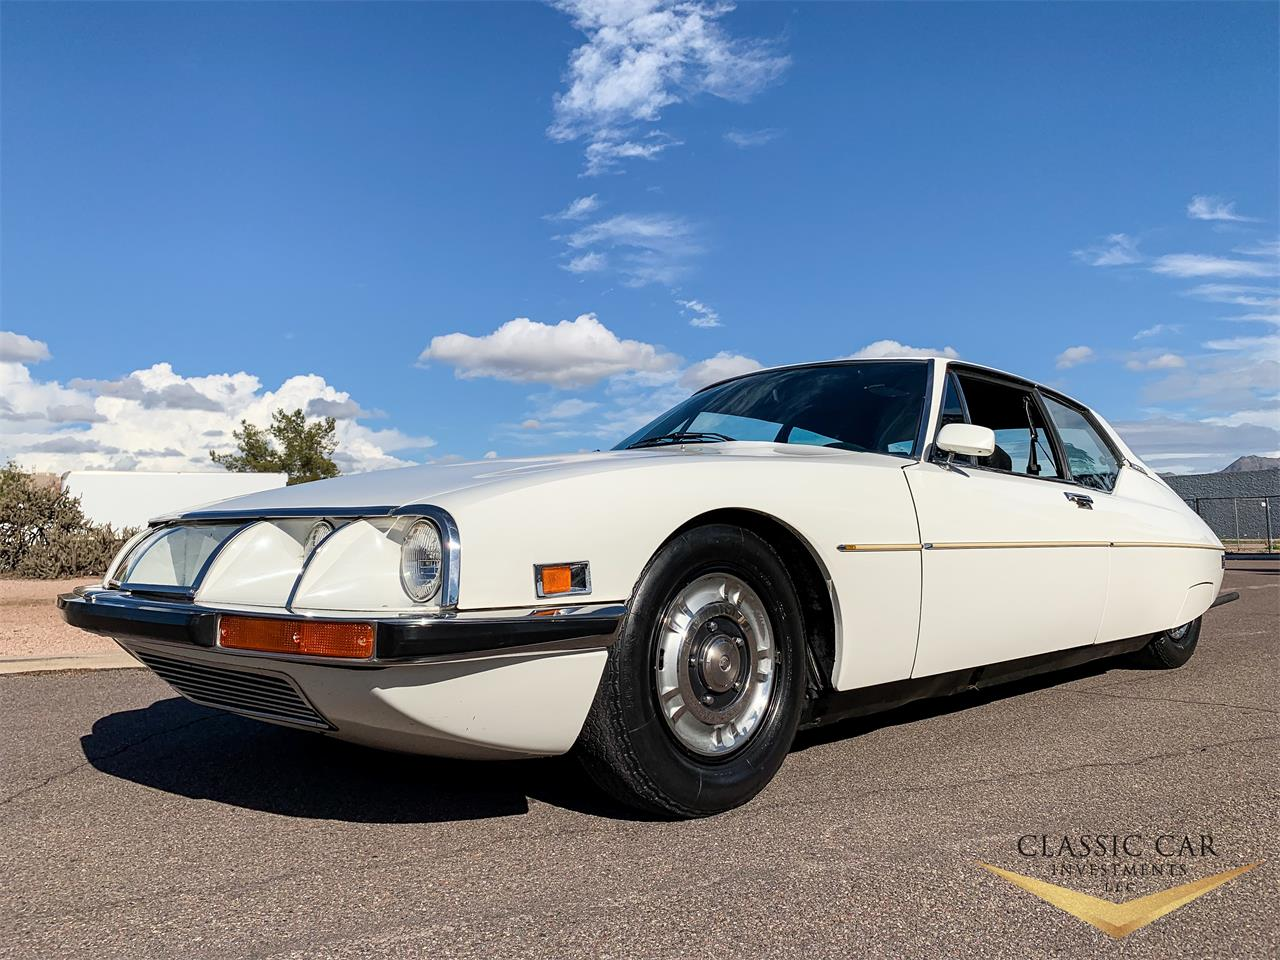 Large Picture of 1972 Citroen SM - $53,500.00 Offered by Classic Car Investments LLC - P667